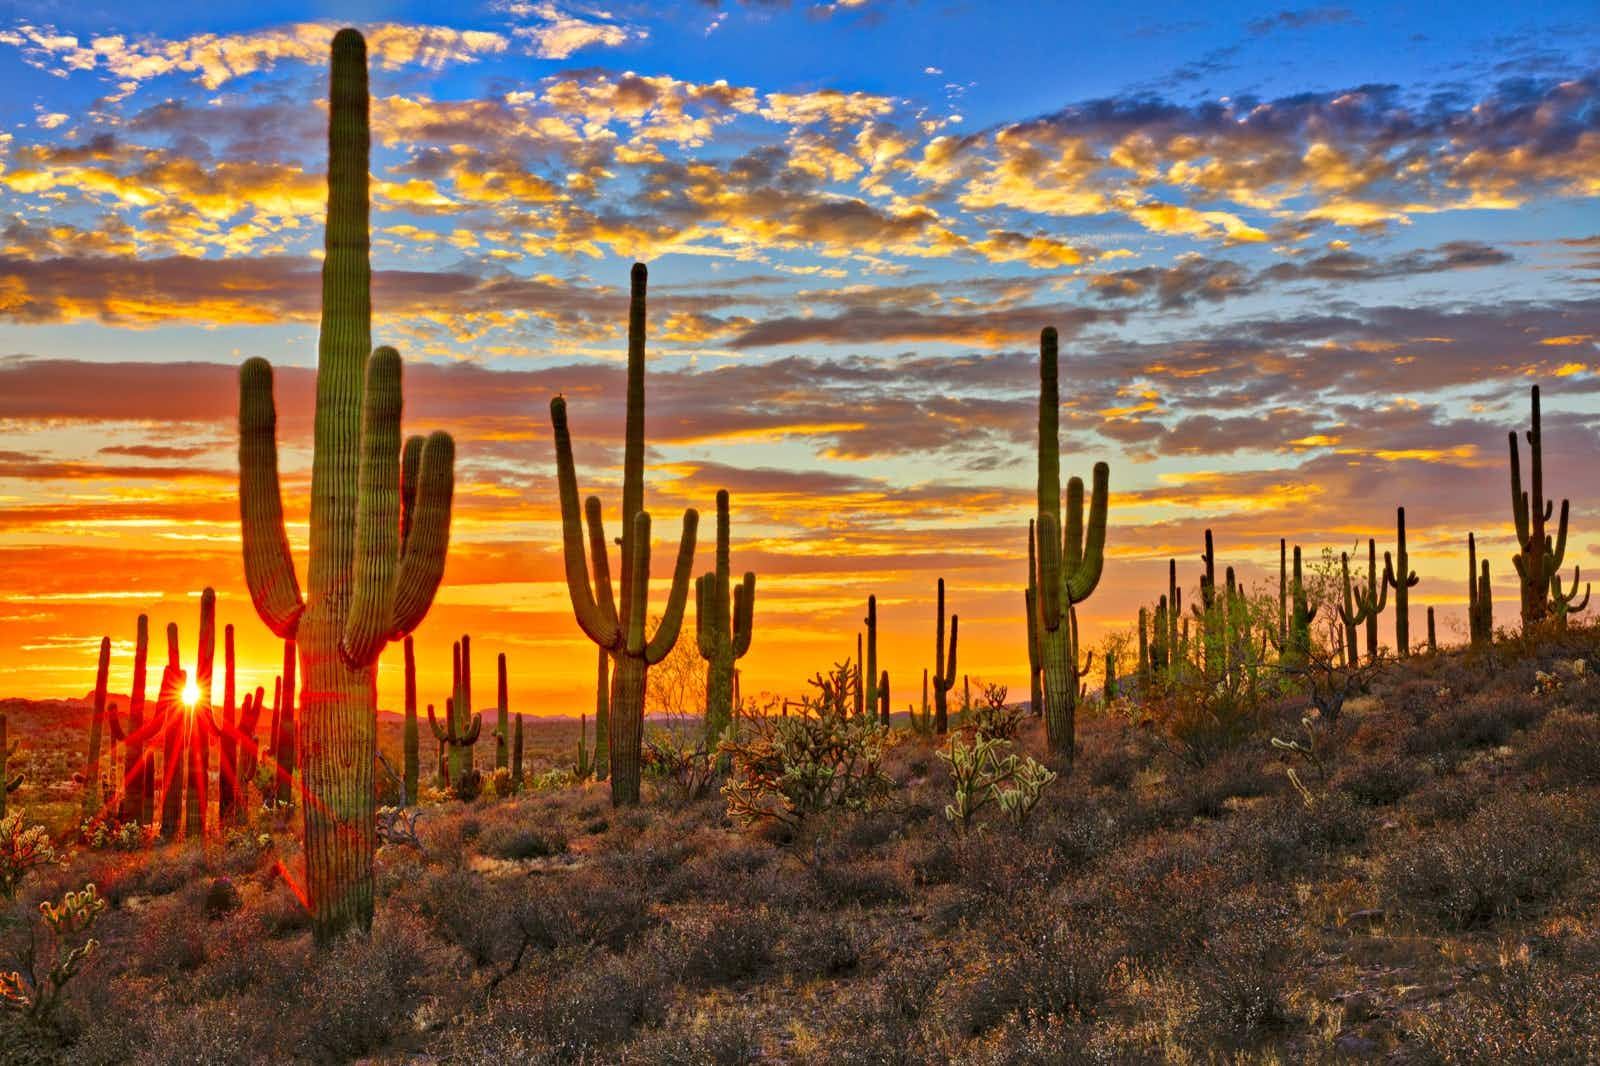 The iconic seguaro cactus and stunning sunsets are just some of the beautiful sights of Tucson © tonda / Getty Images